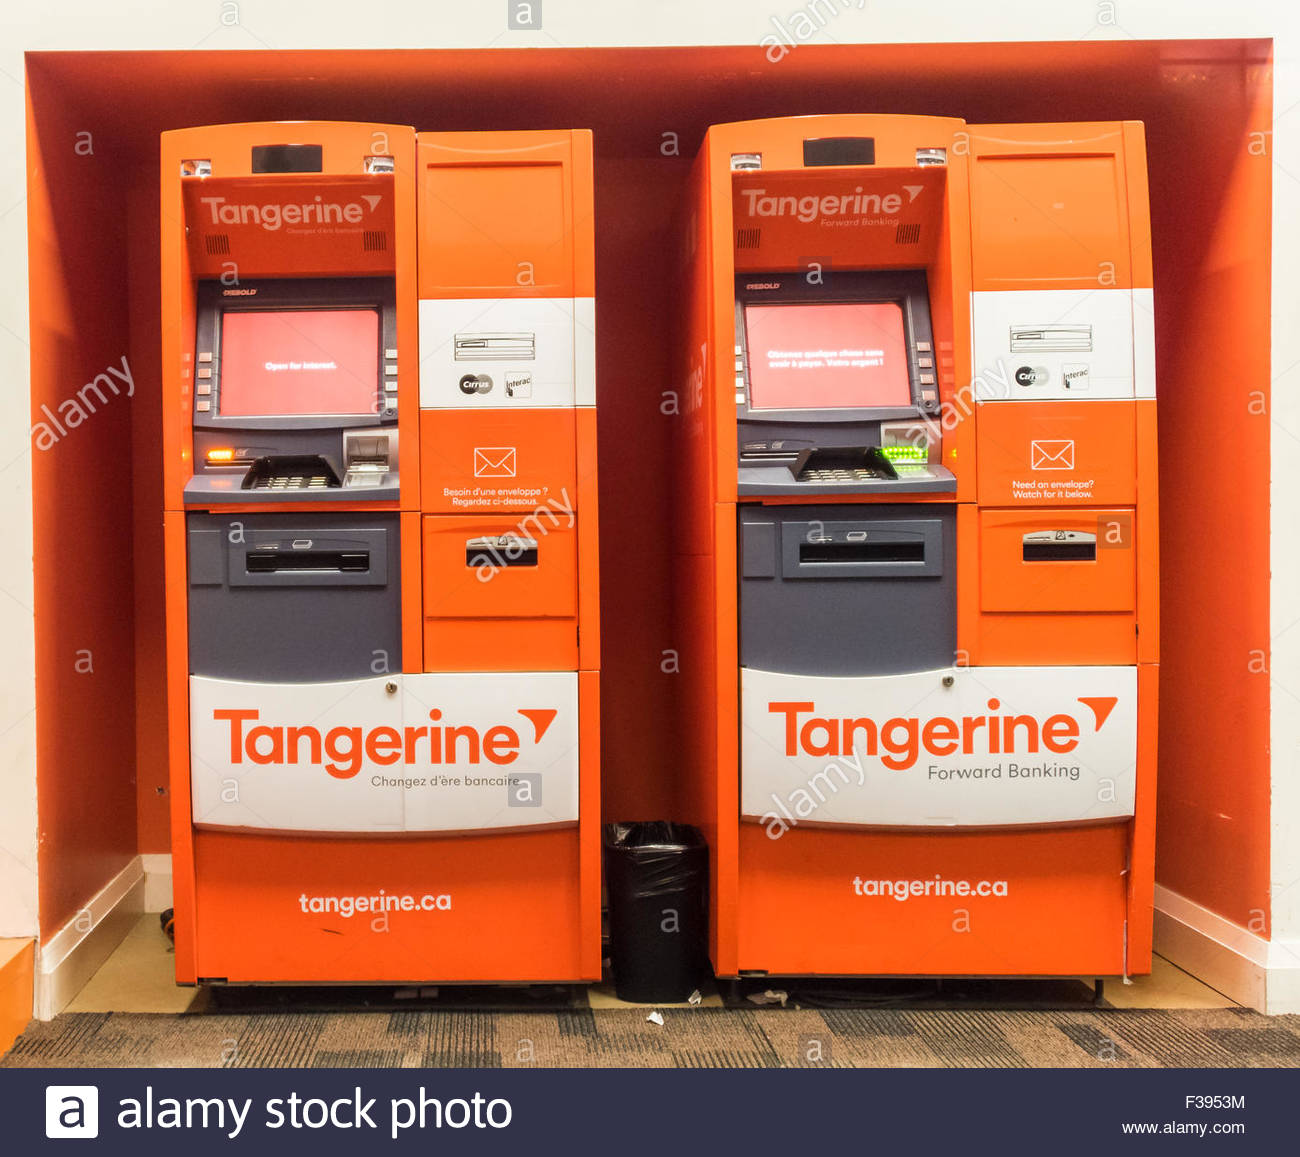 Two automated banking machines in orange colour of Tangerine